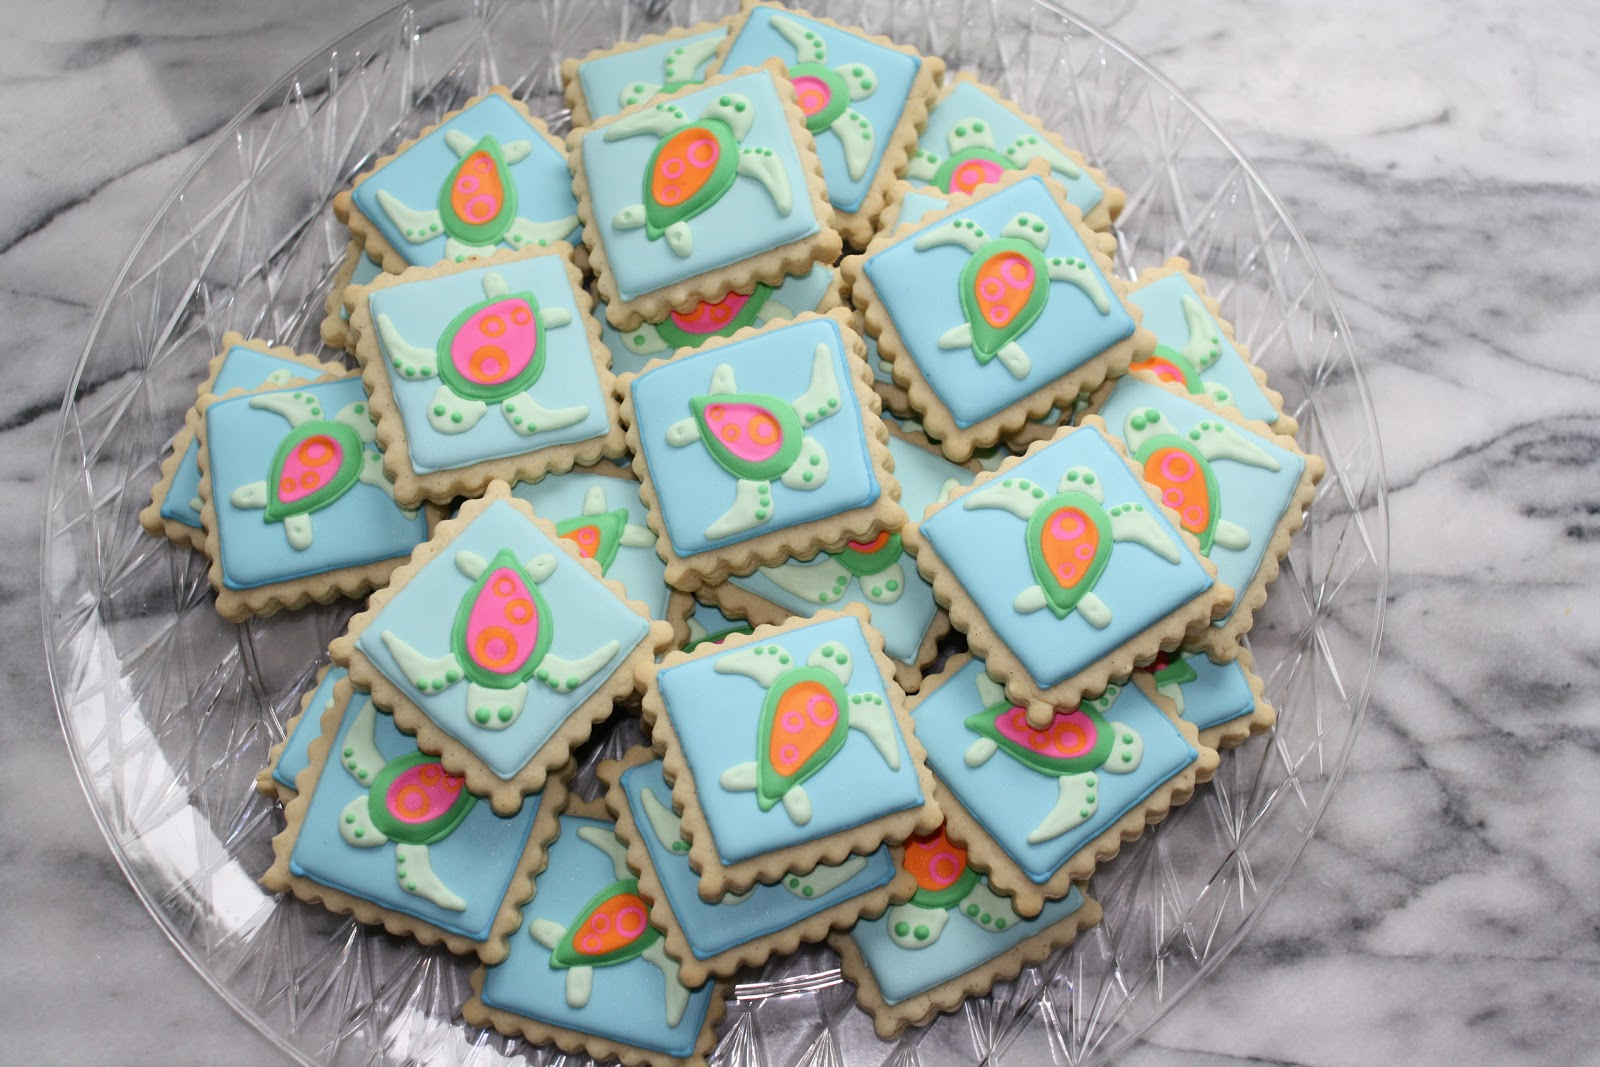 cammy u0026 39 s kitchen  off topic - decorated cookies